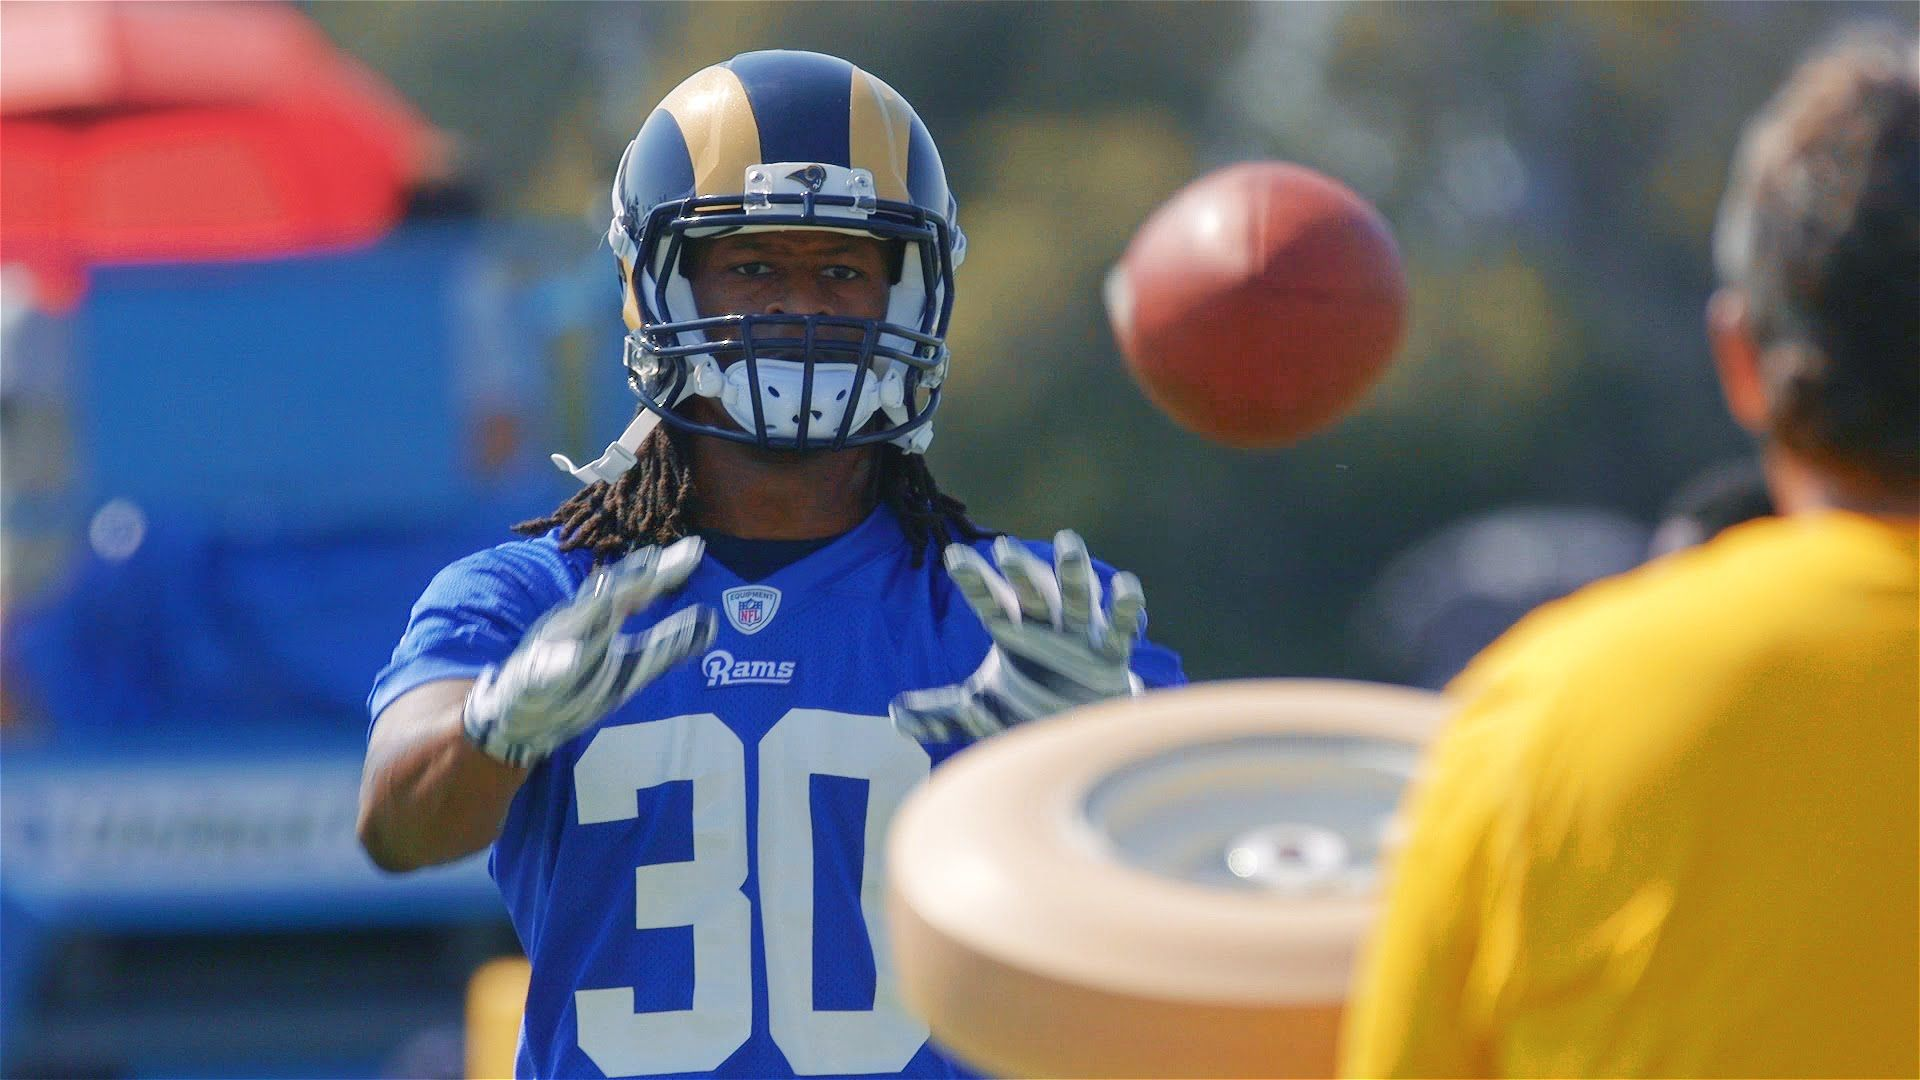 The Los Angeles Rams Held Their 2016 Training Camp At Uc Irvine Irvine Training Camp Athlete